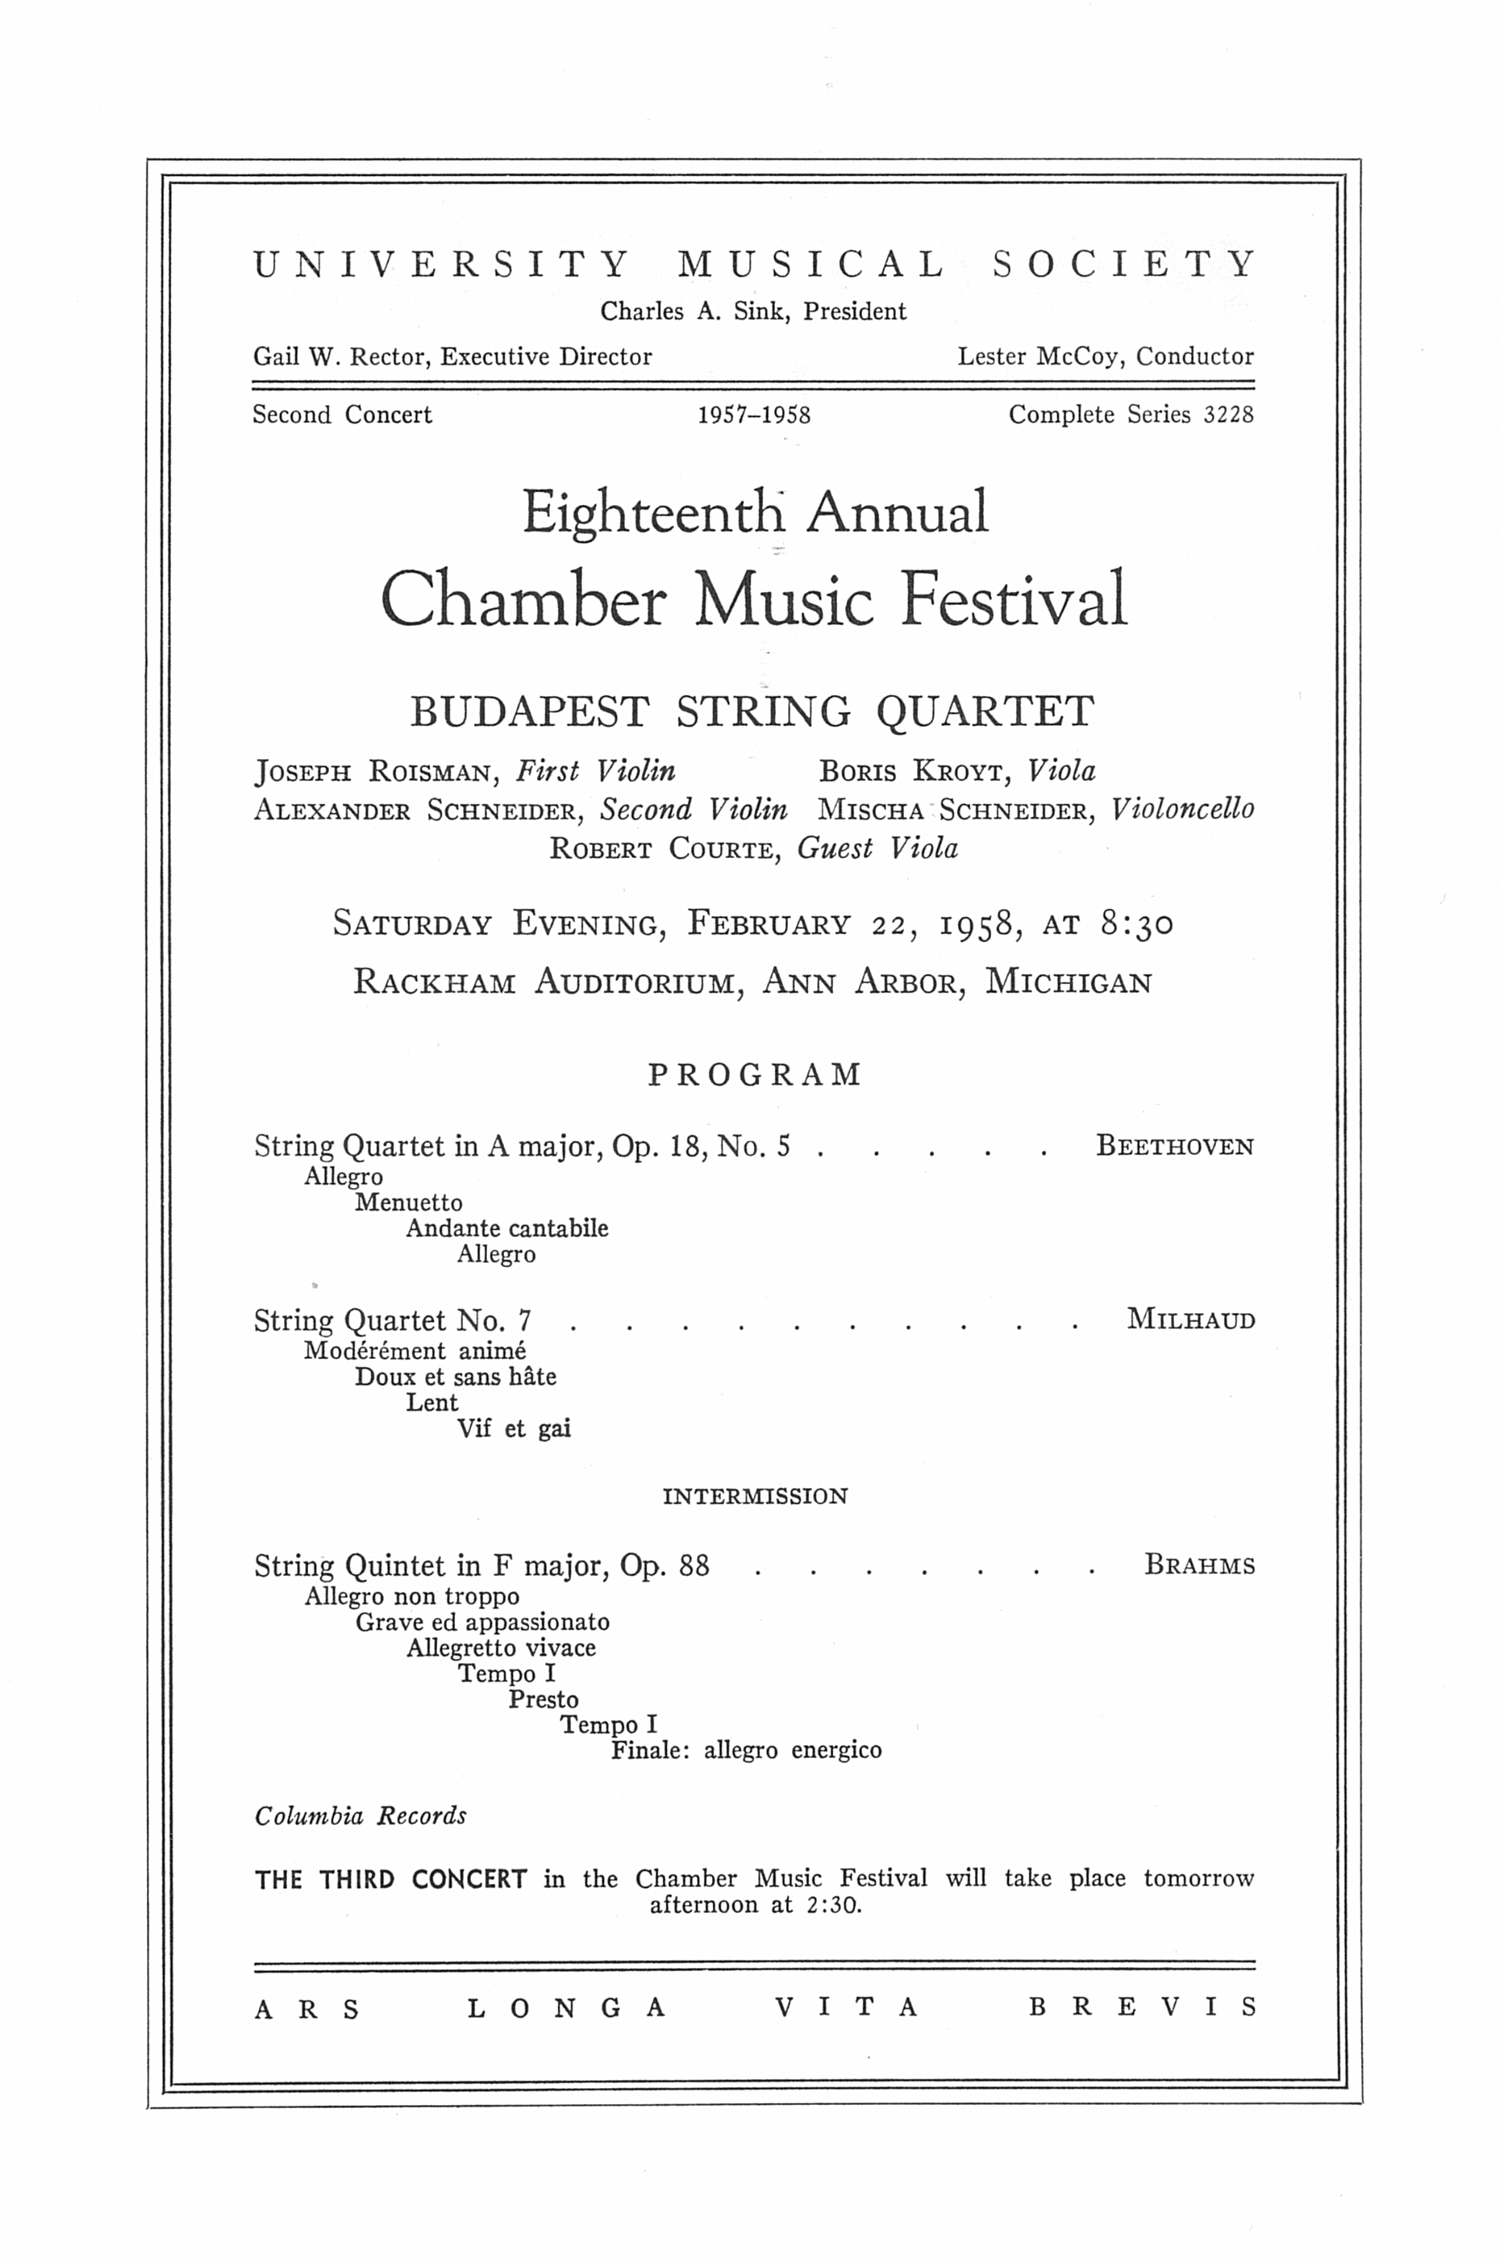 UMS Concert Program, February 22, 1958: Eighteenth Annual Chamber Music Festival -- Budapest String Quartet image